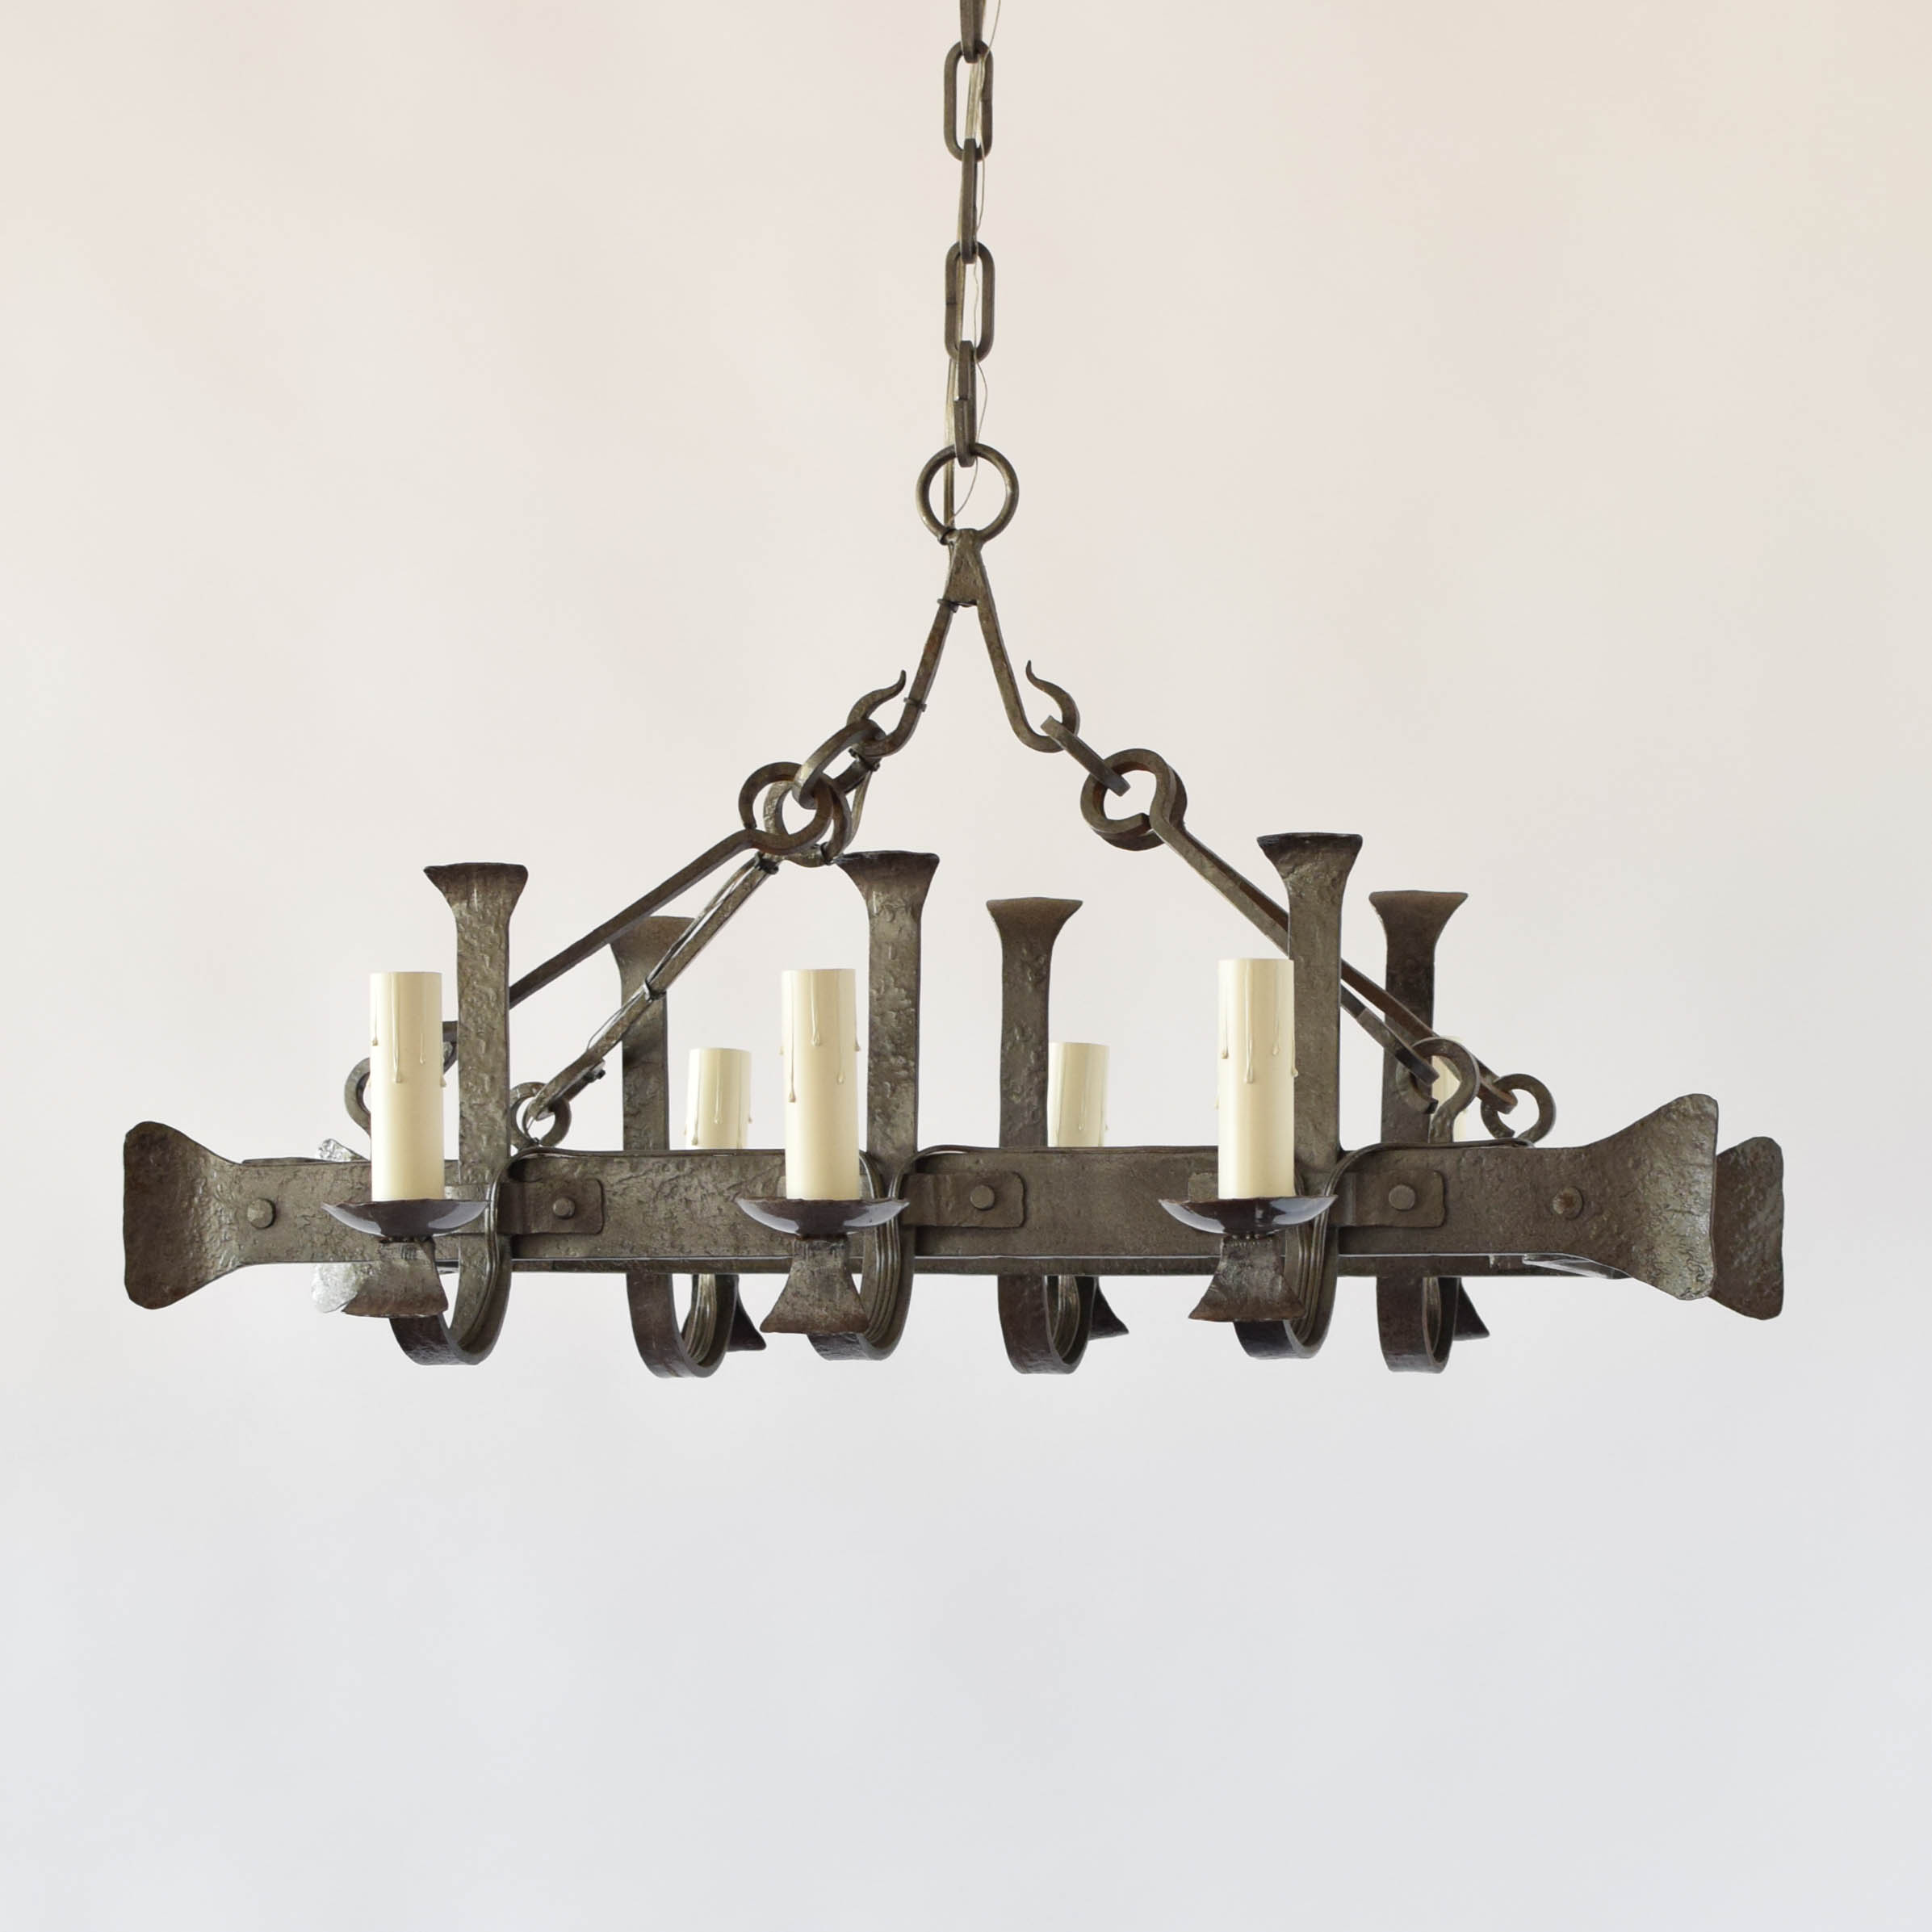 century antique mg style old lighting antiques fashioned chandelier empire french scandinavian